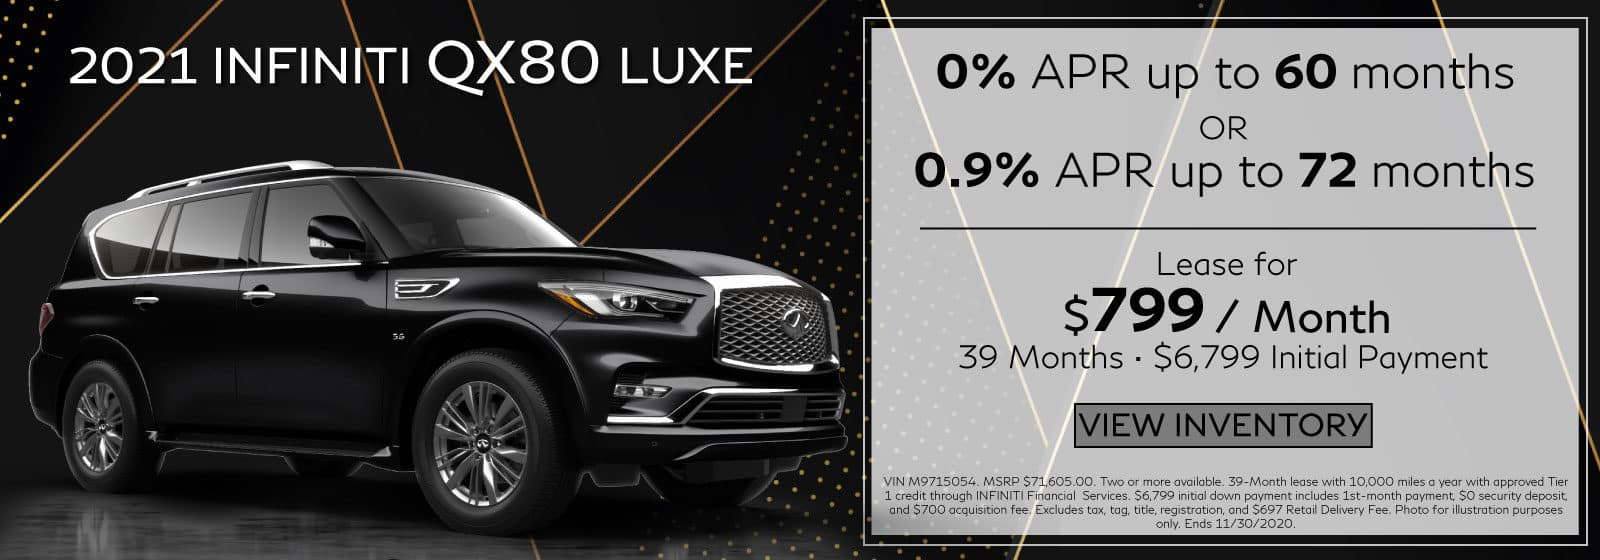 2021 QX80 LUXE. $799/mo for 39 months. $6,799 Initial Payment